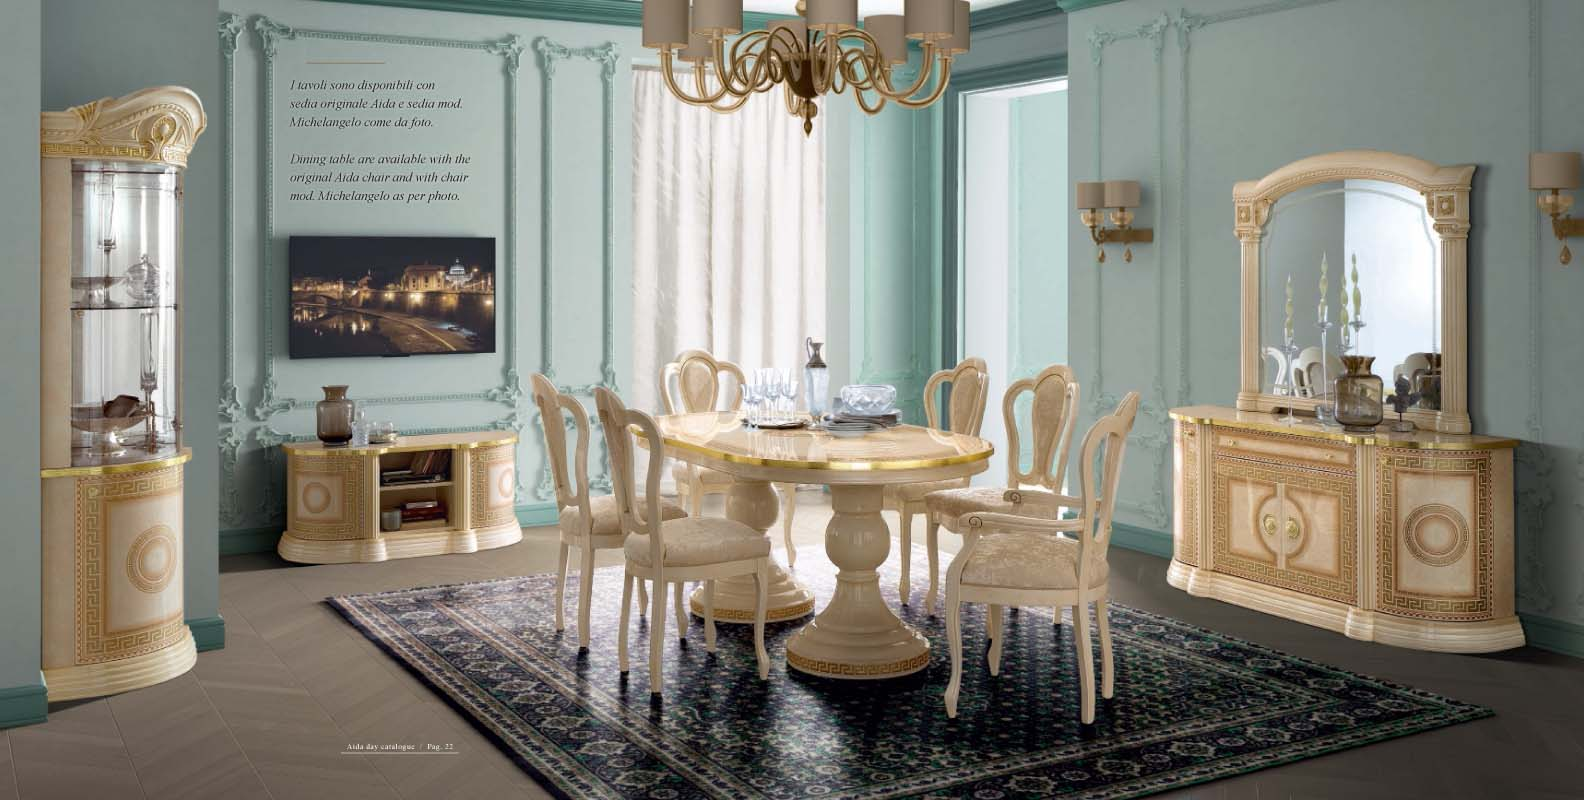 Aida dining classic formal dining sets dining room furniture Should living room furniture match dining room furniture